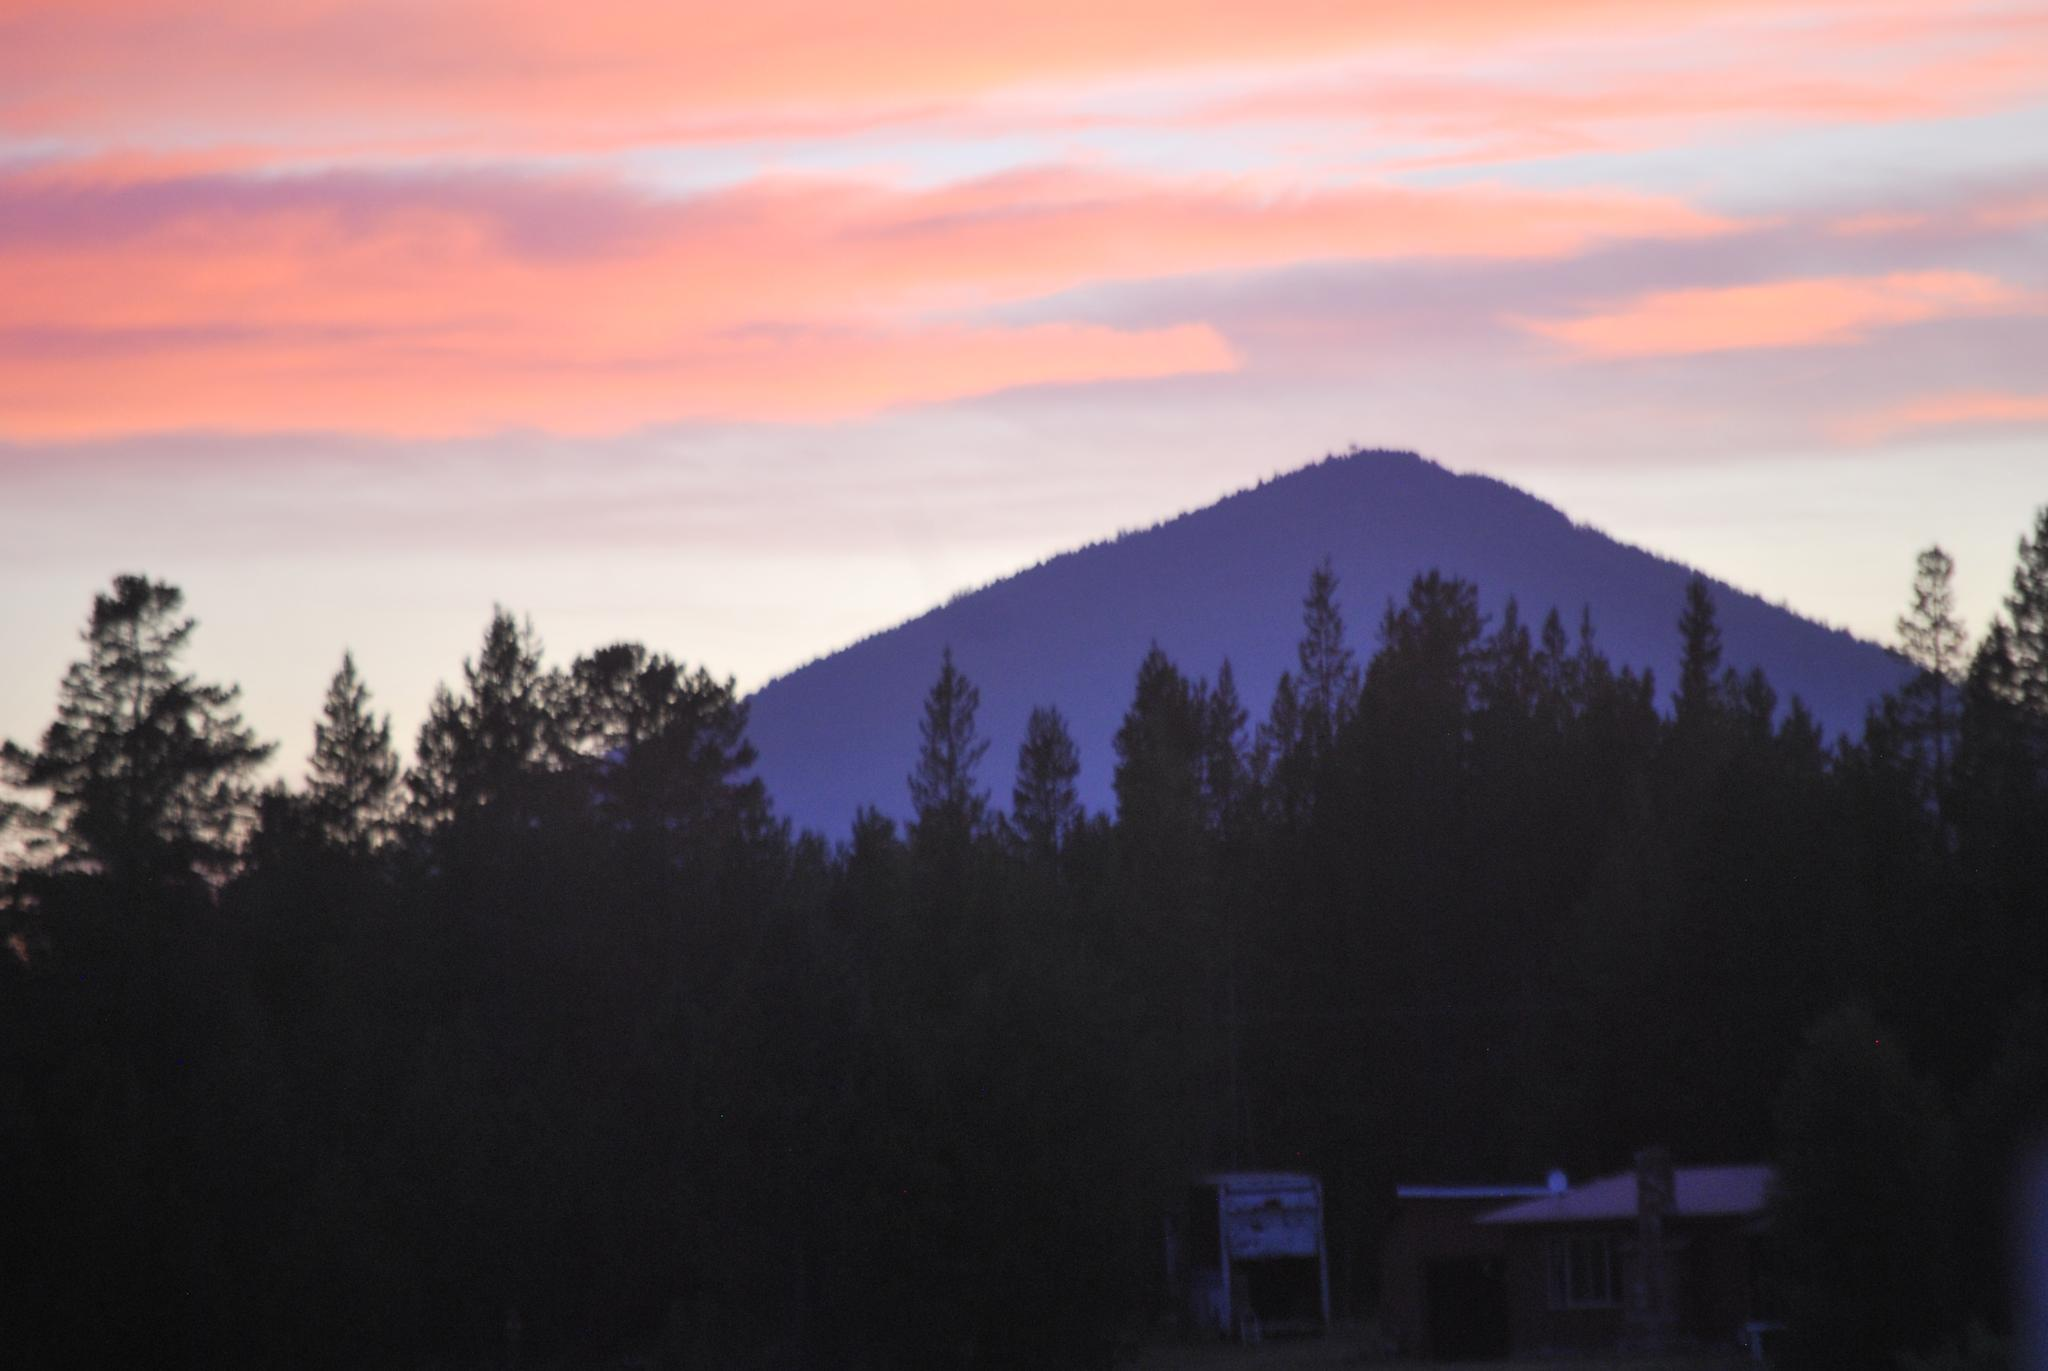 The butte in sunset by marilyn wirtz